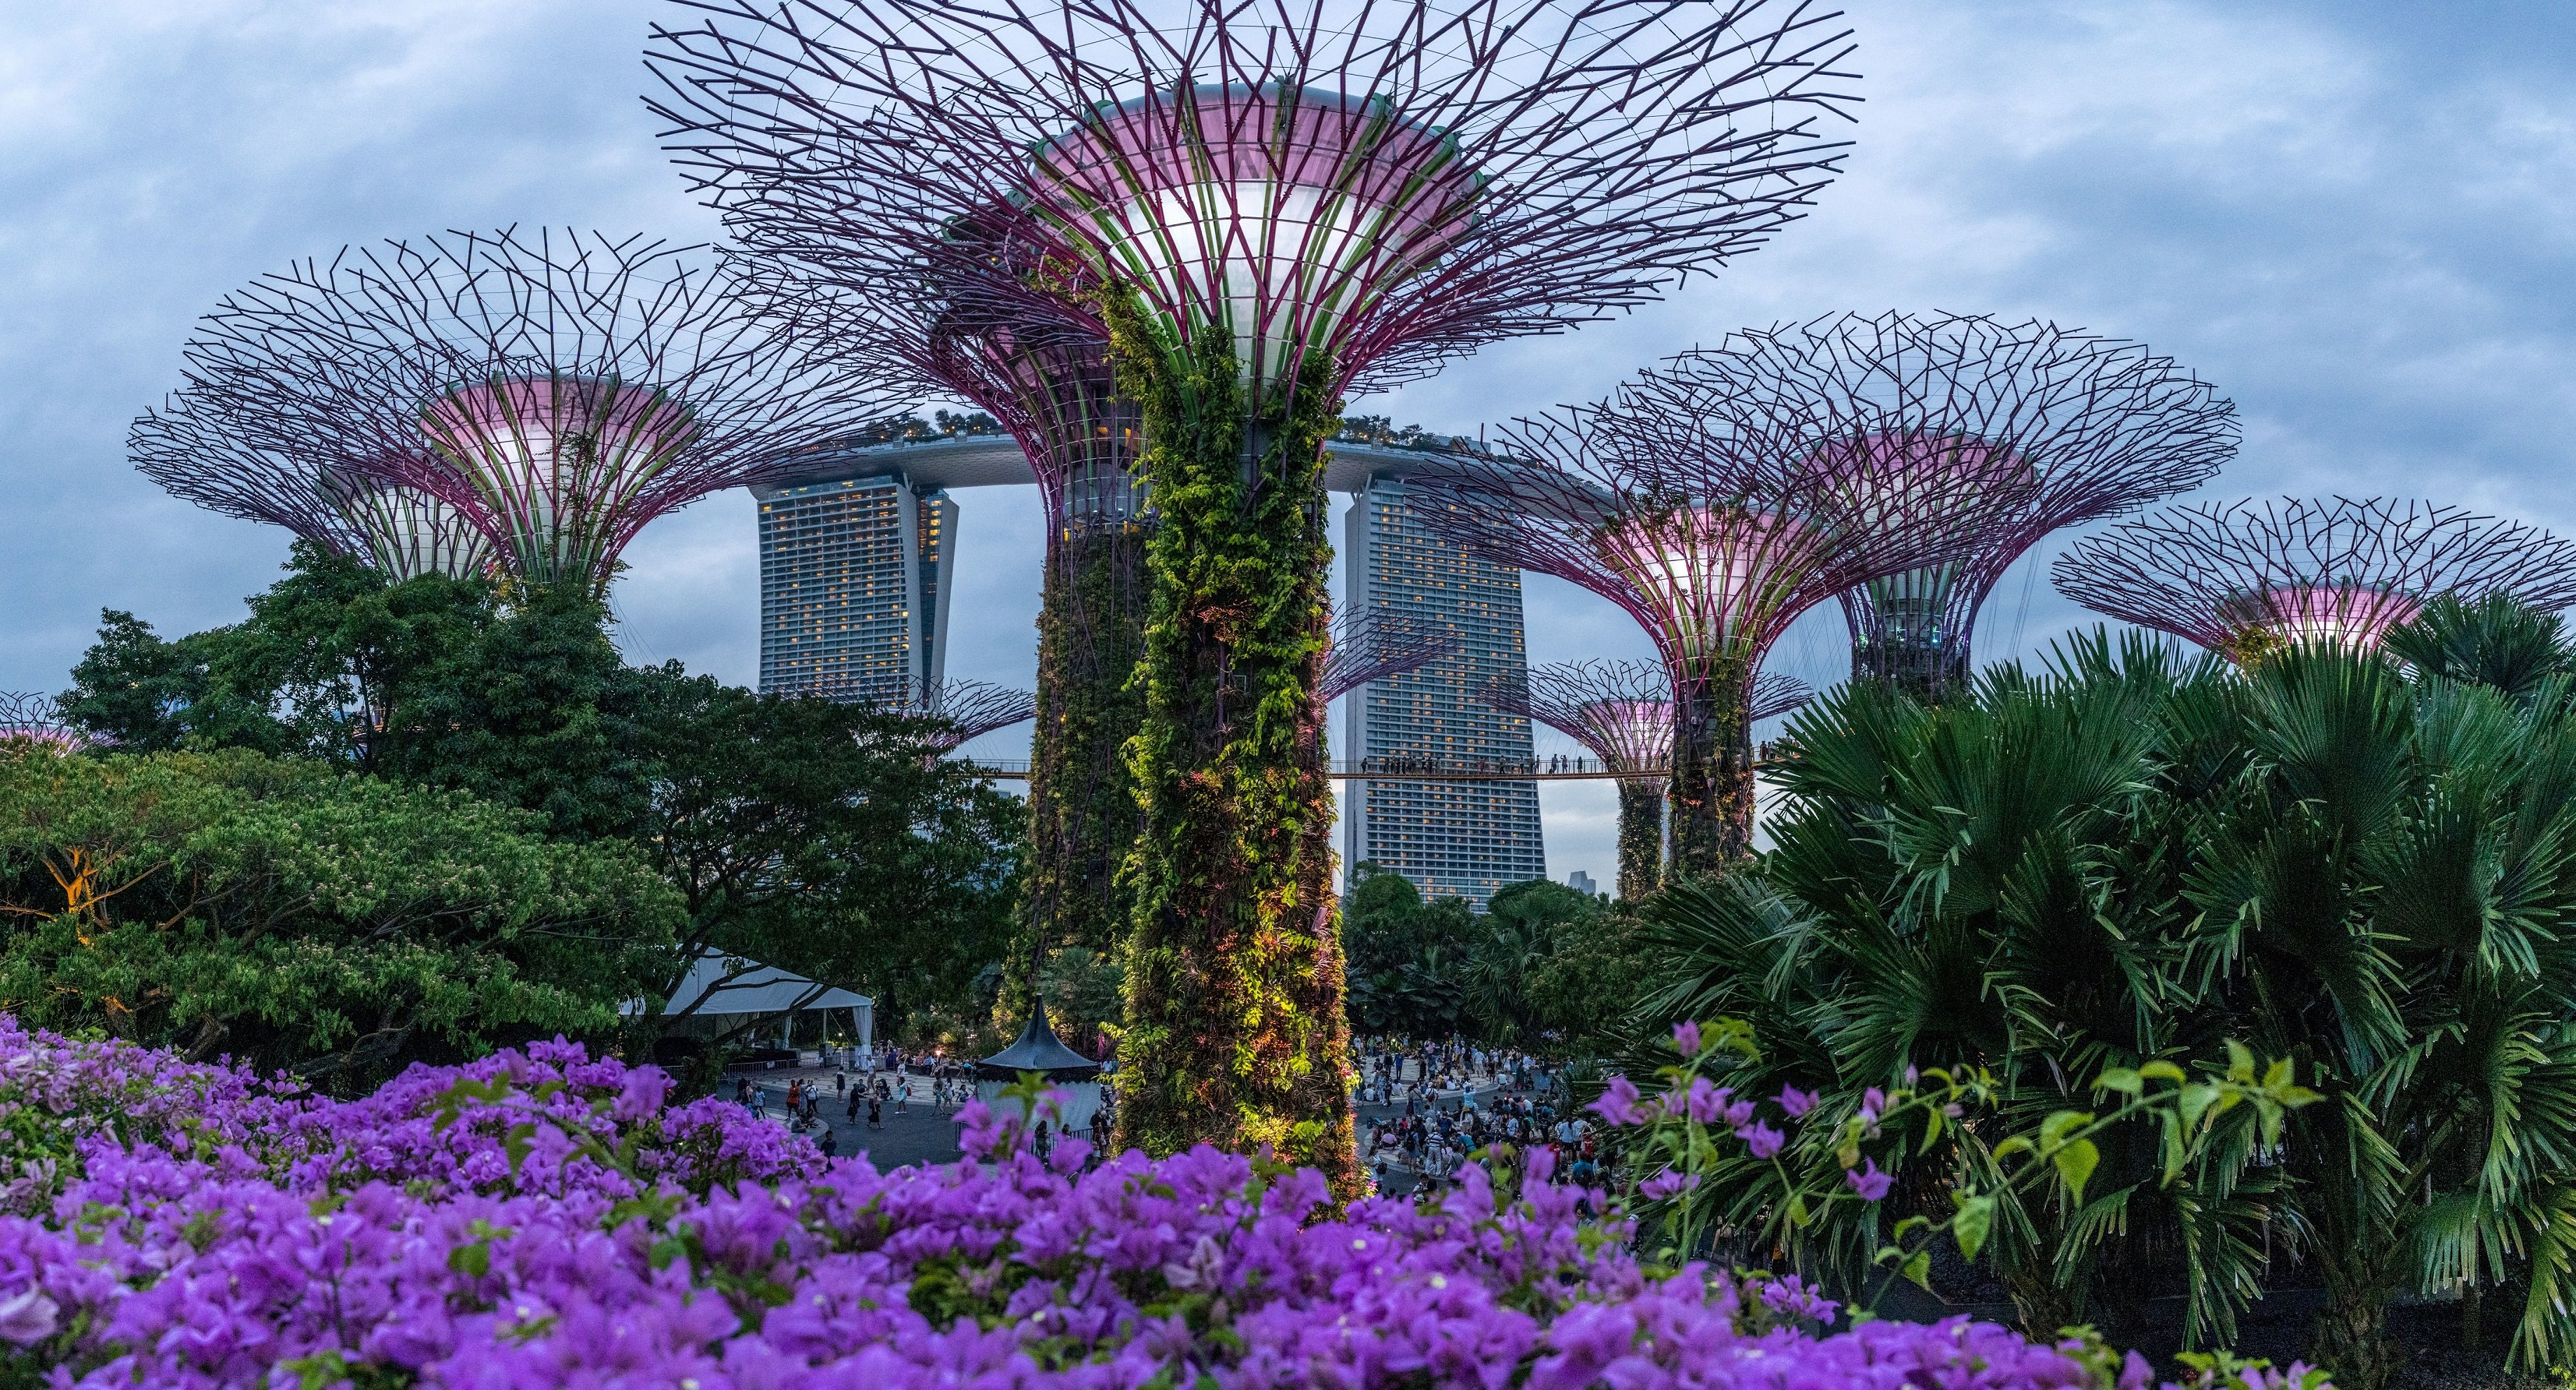 Singapore January 2016: Blue Hour View Of Super Tree Grove At Gardens By The Bay. Spanning 101 Hectares Of Reclaimed Land In Central Singapore, Adjacent To The Marina Reservoir